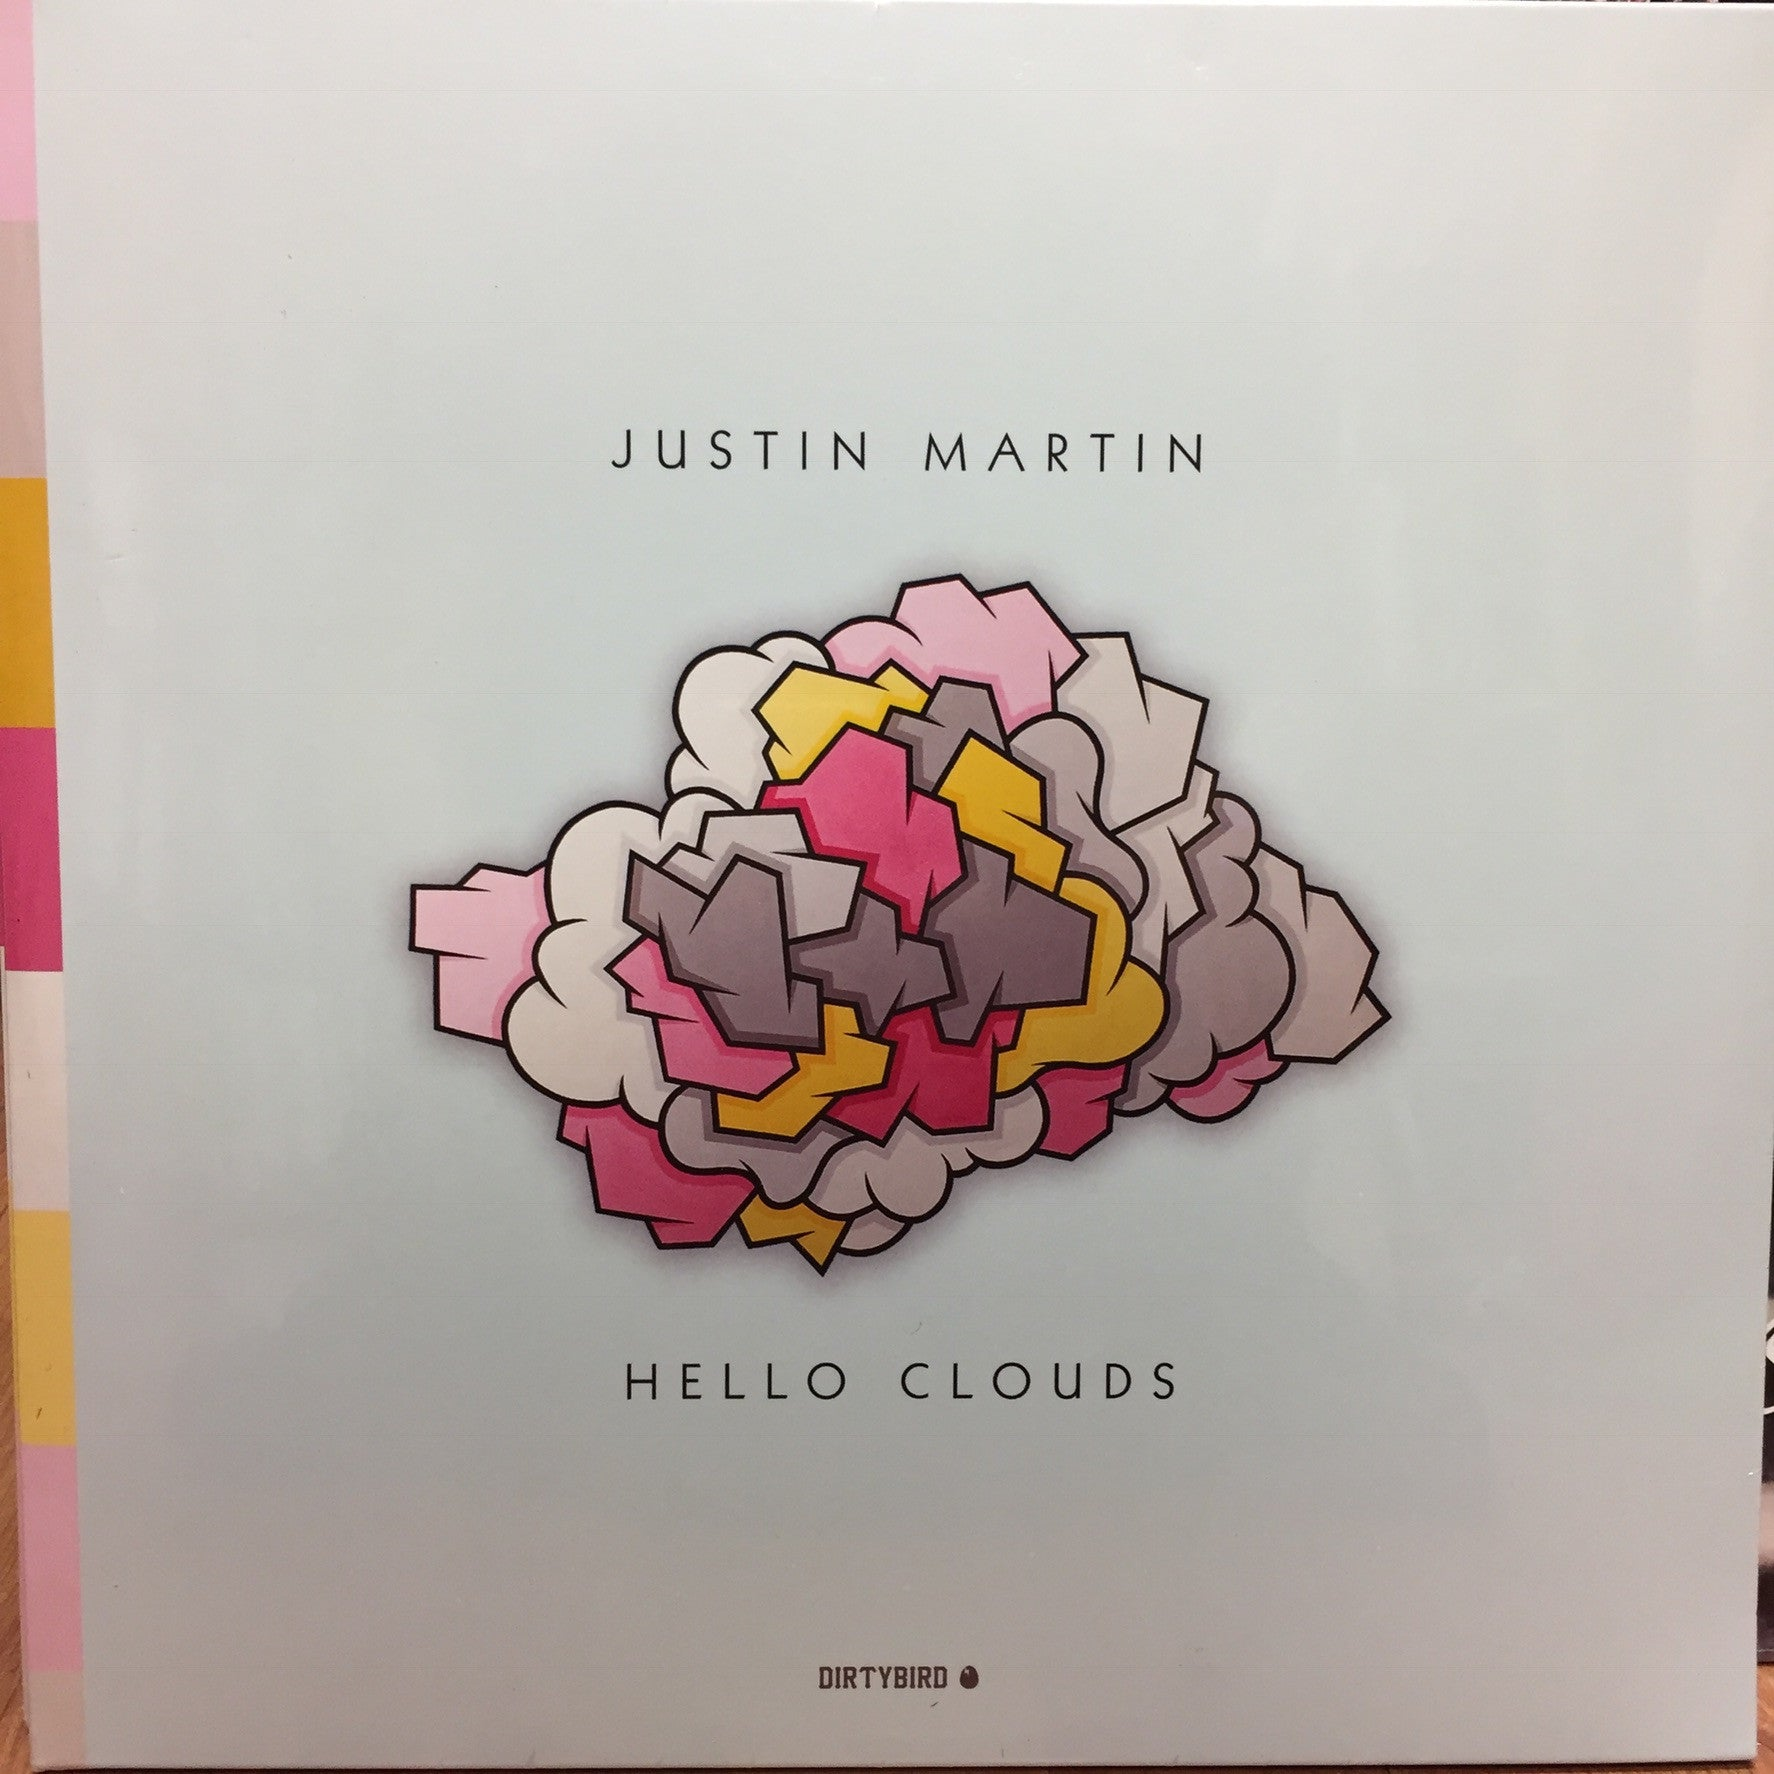 "Justin Martin ‎– Hello Clouds : Dirtybird ‎– DB137 : 2 × Vinyl, 12"", Album"